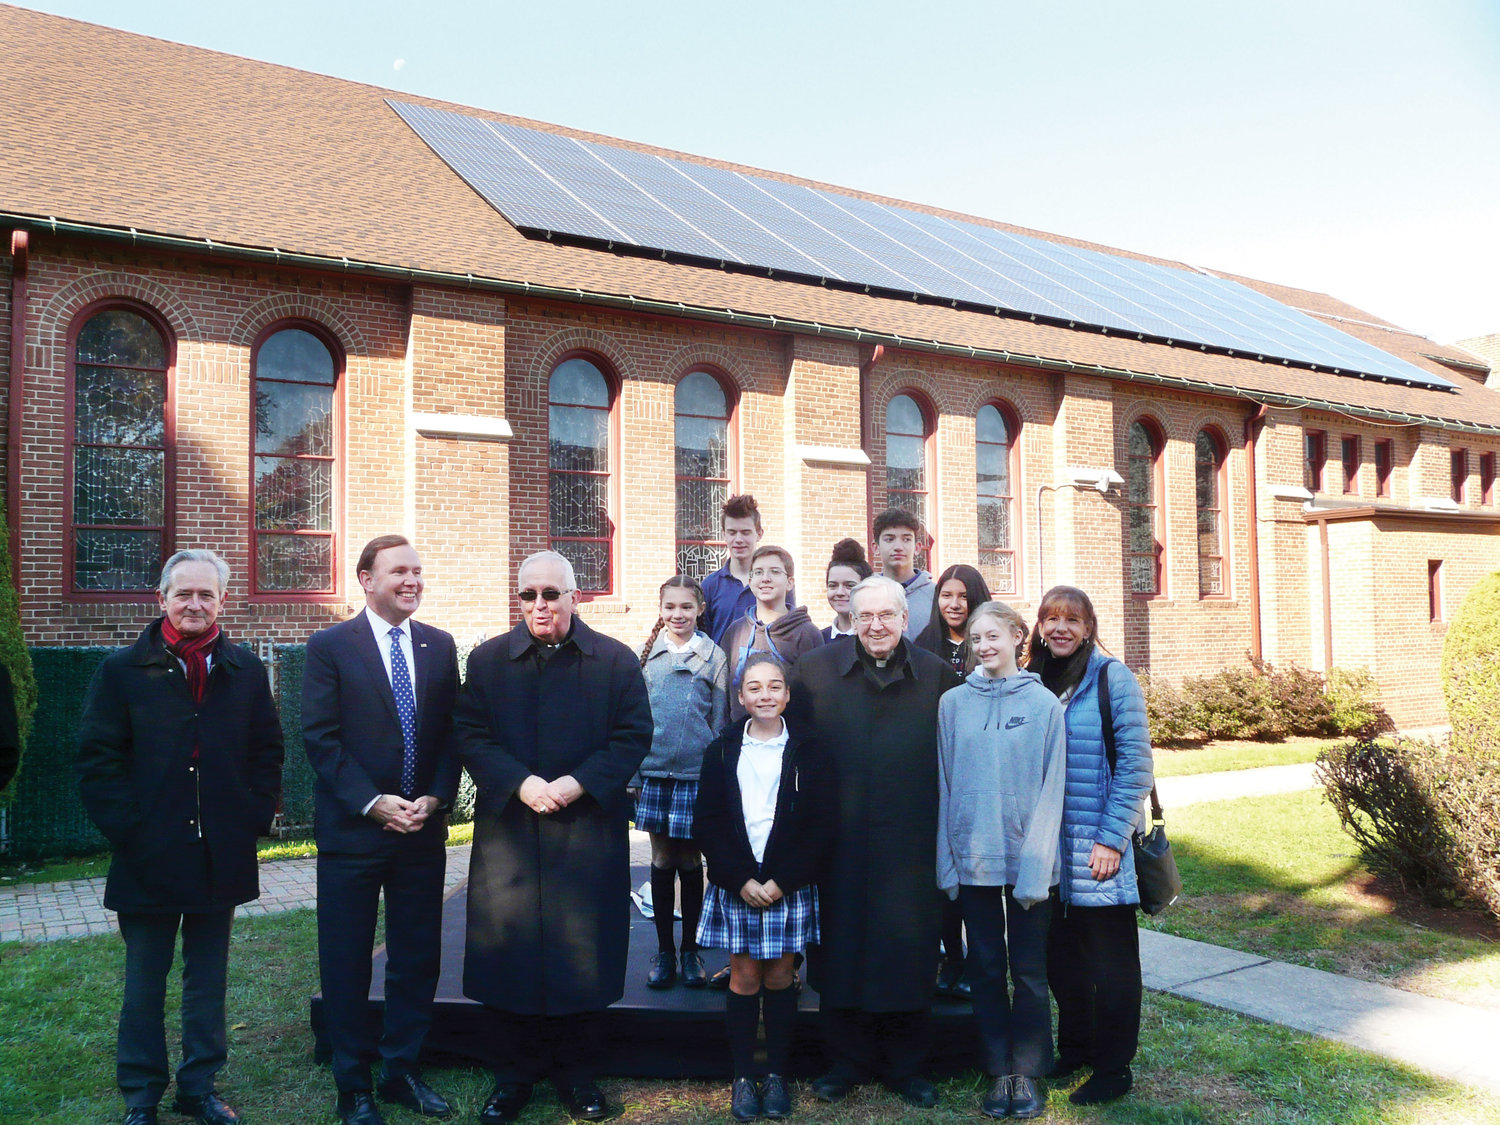 Joining Auxiliary Bishop John O'Hara, third from left, and Msgr. Peter Finn, administrator of Blessed Sacrament parish, along with eighth-graders from Blessed Sacrament School, were Martin Susz, director of energy management for the archdiocese, far left, and New York State Assembly member Michael Cusick.